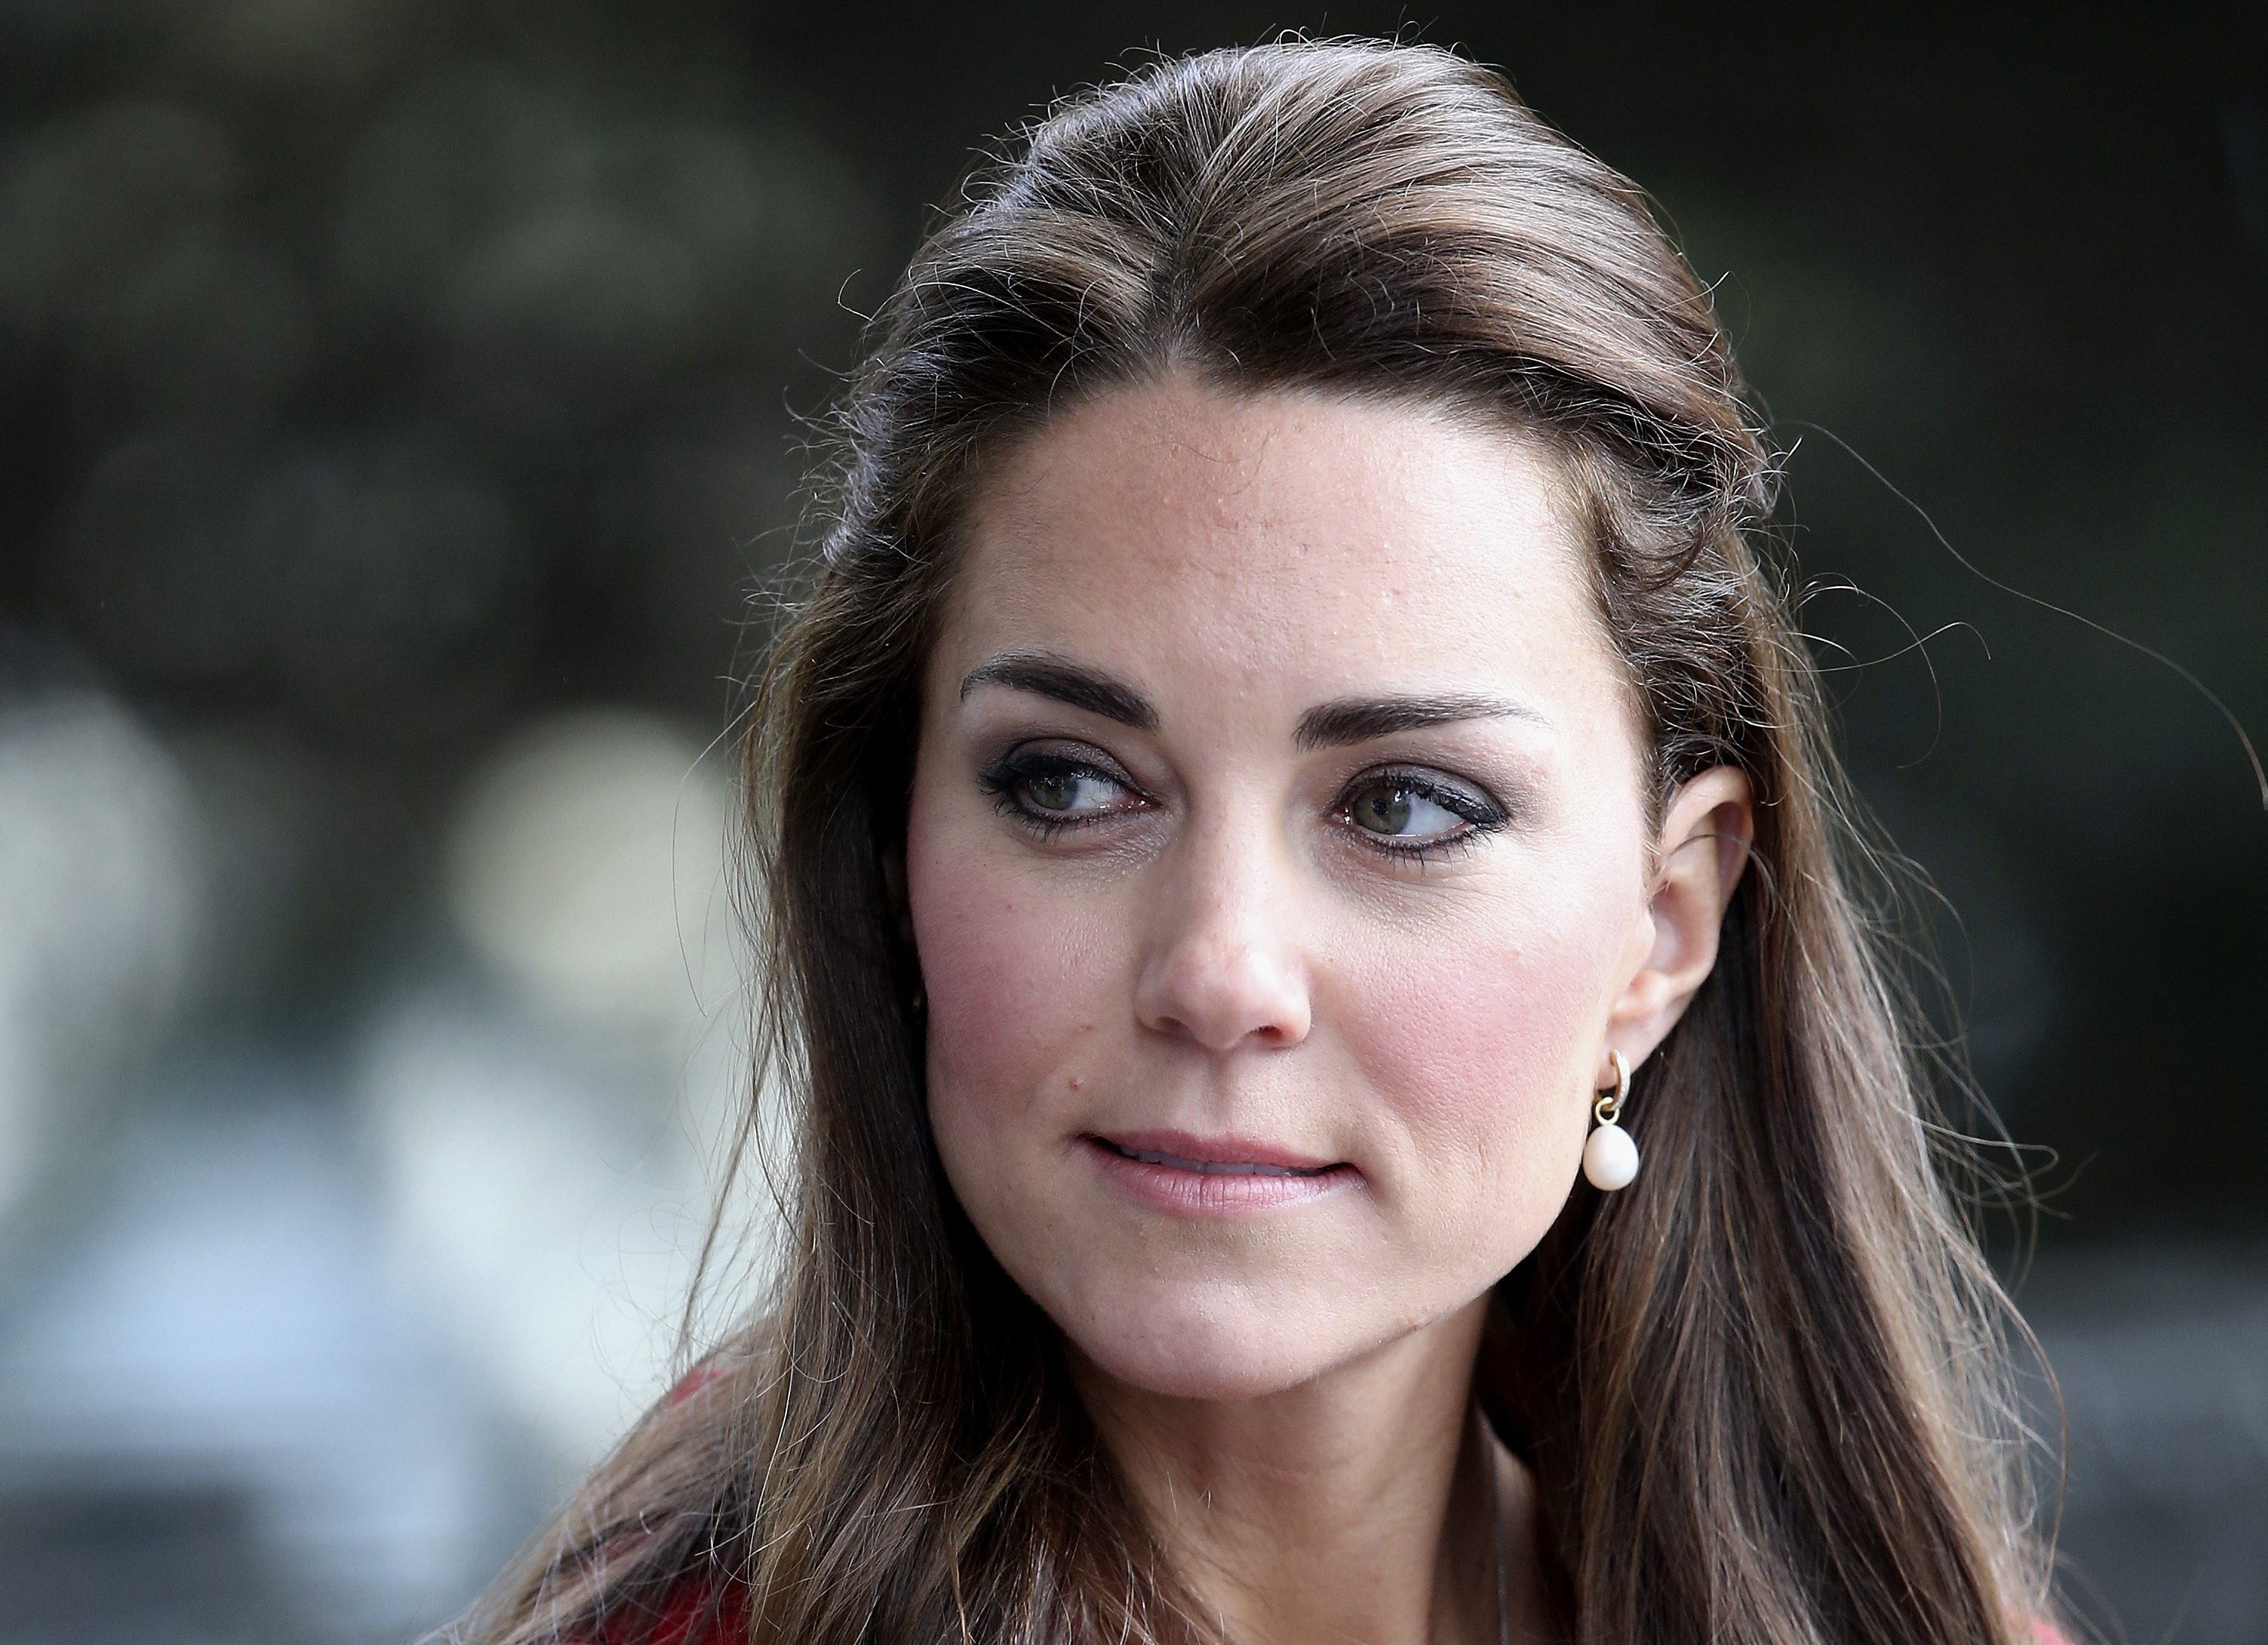 kate middleton wallpaper background 60861